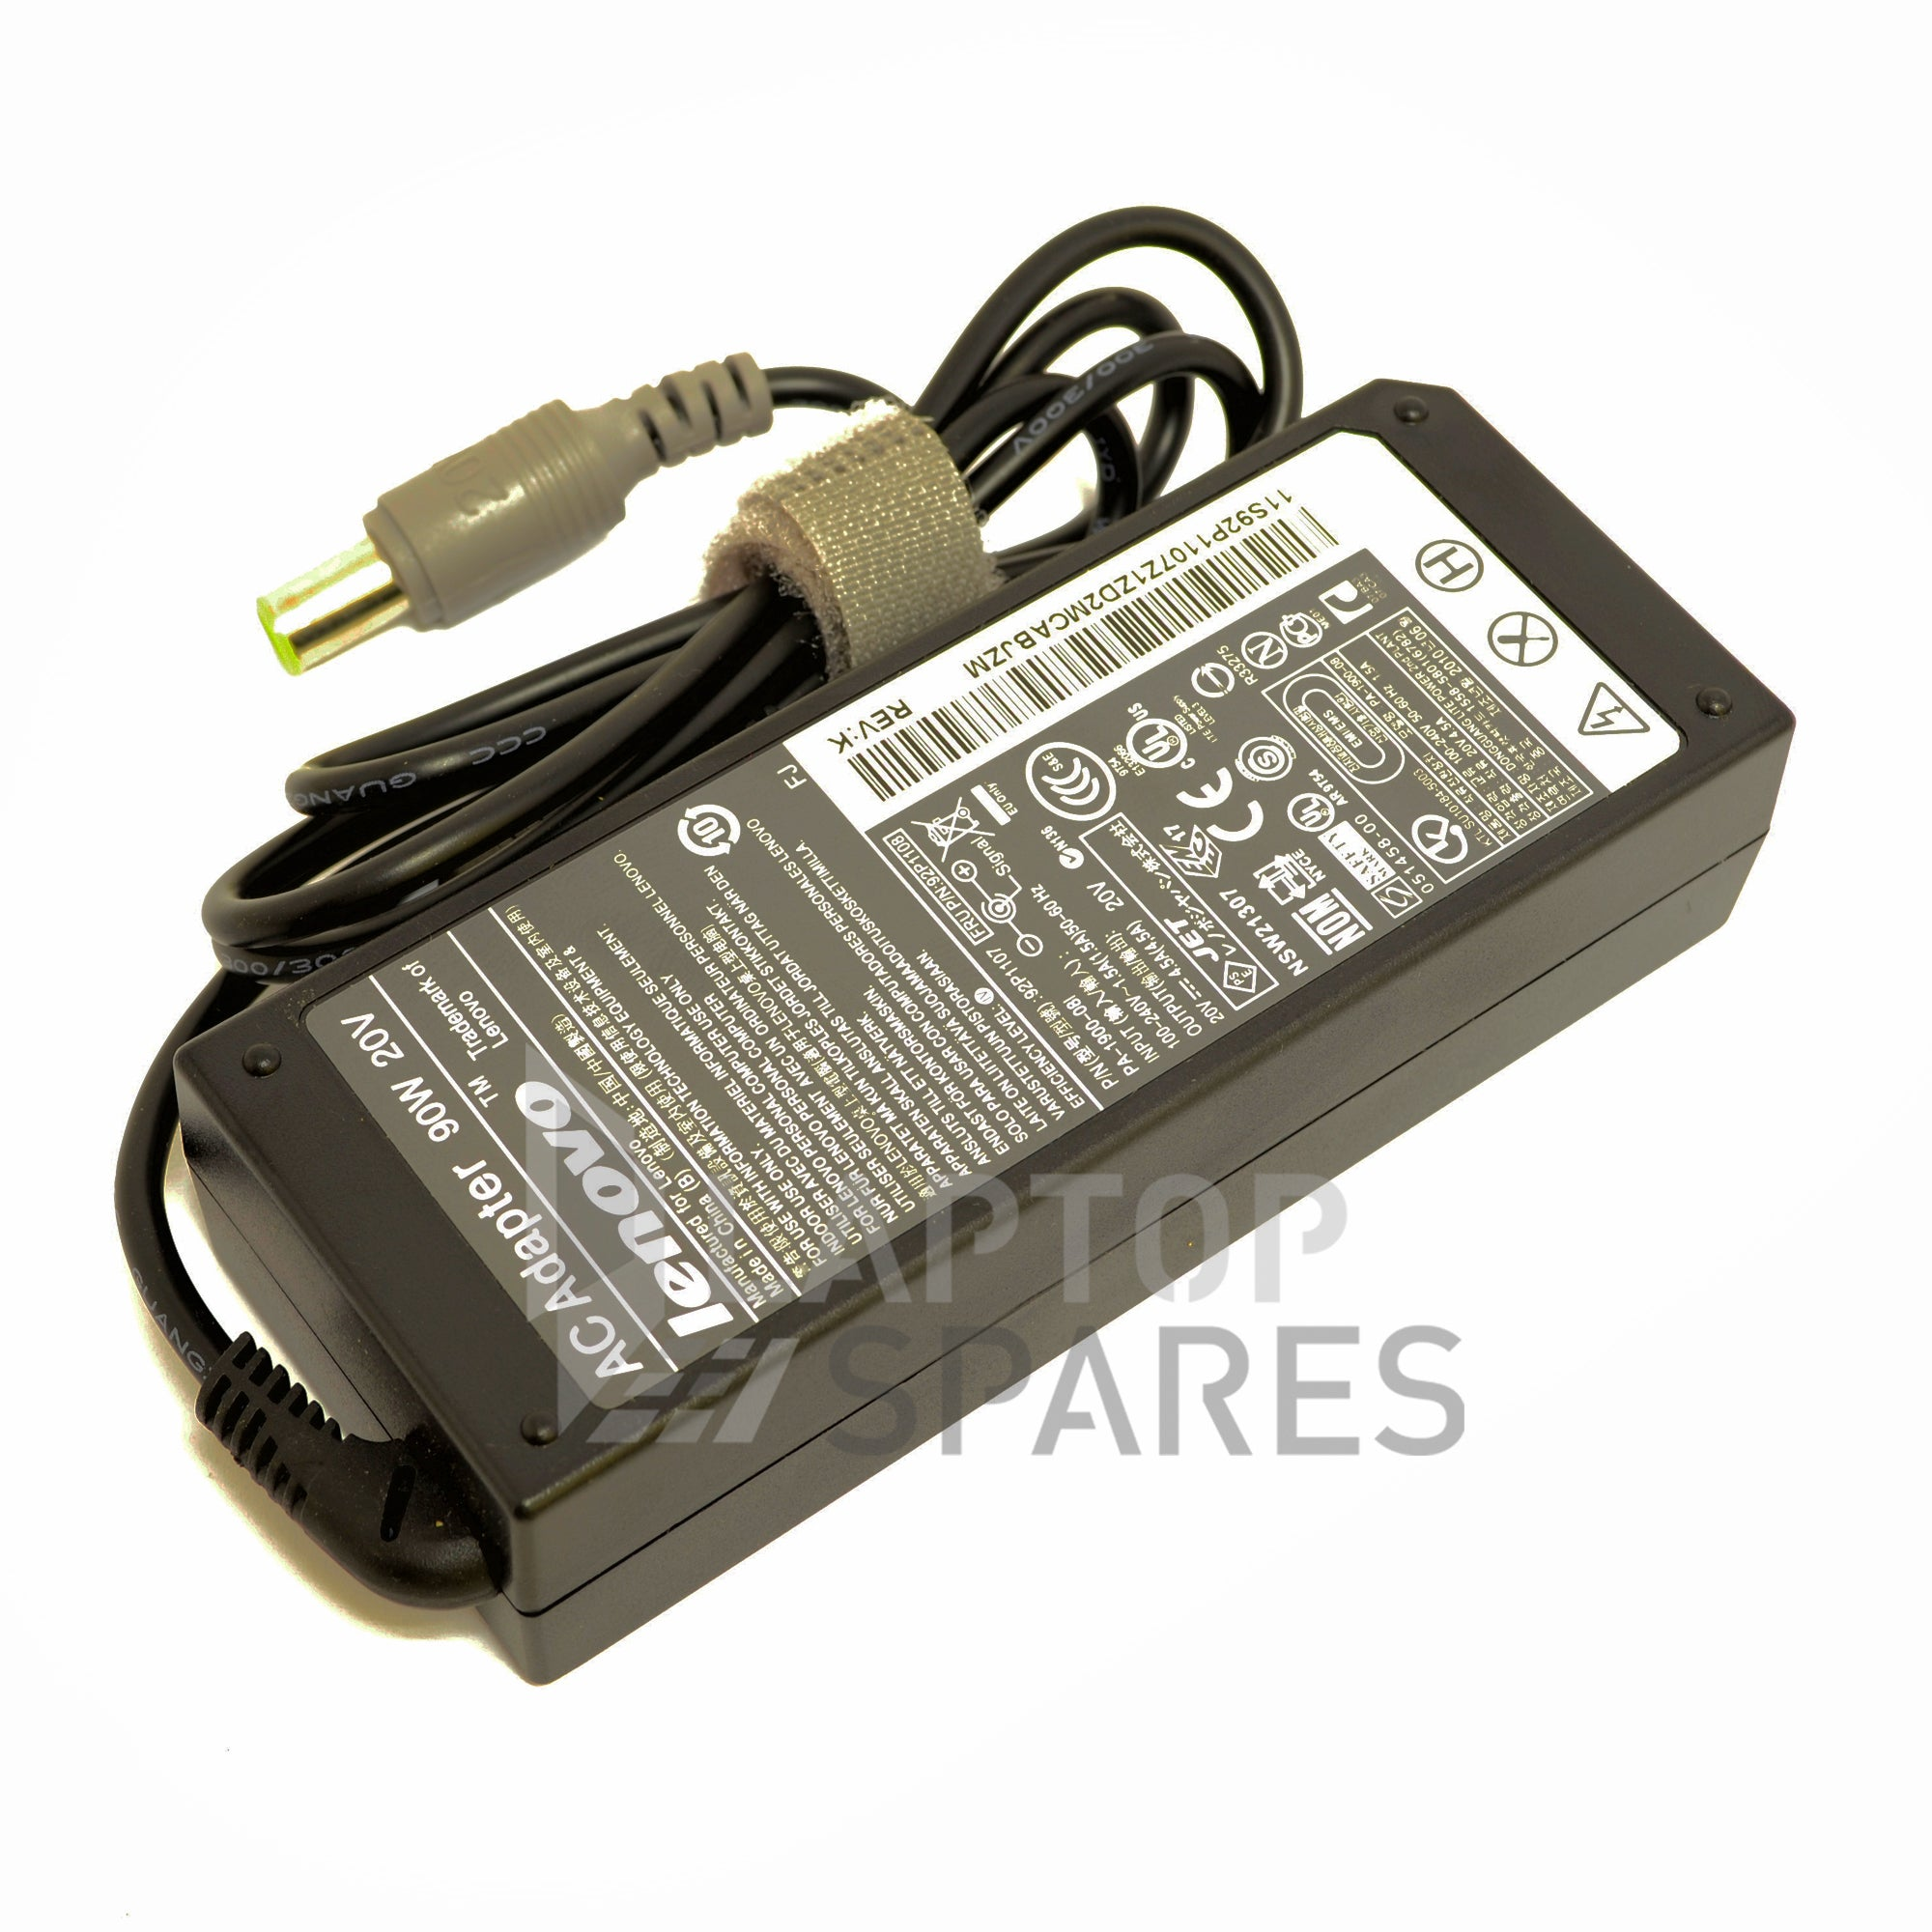 Lenovo 3000 C200 Laptop AC Adapter Charger